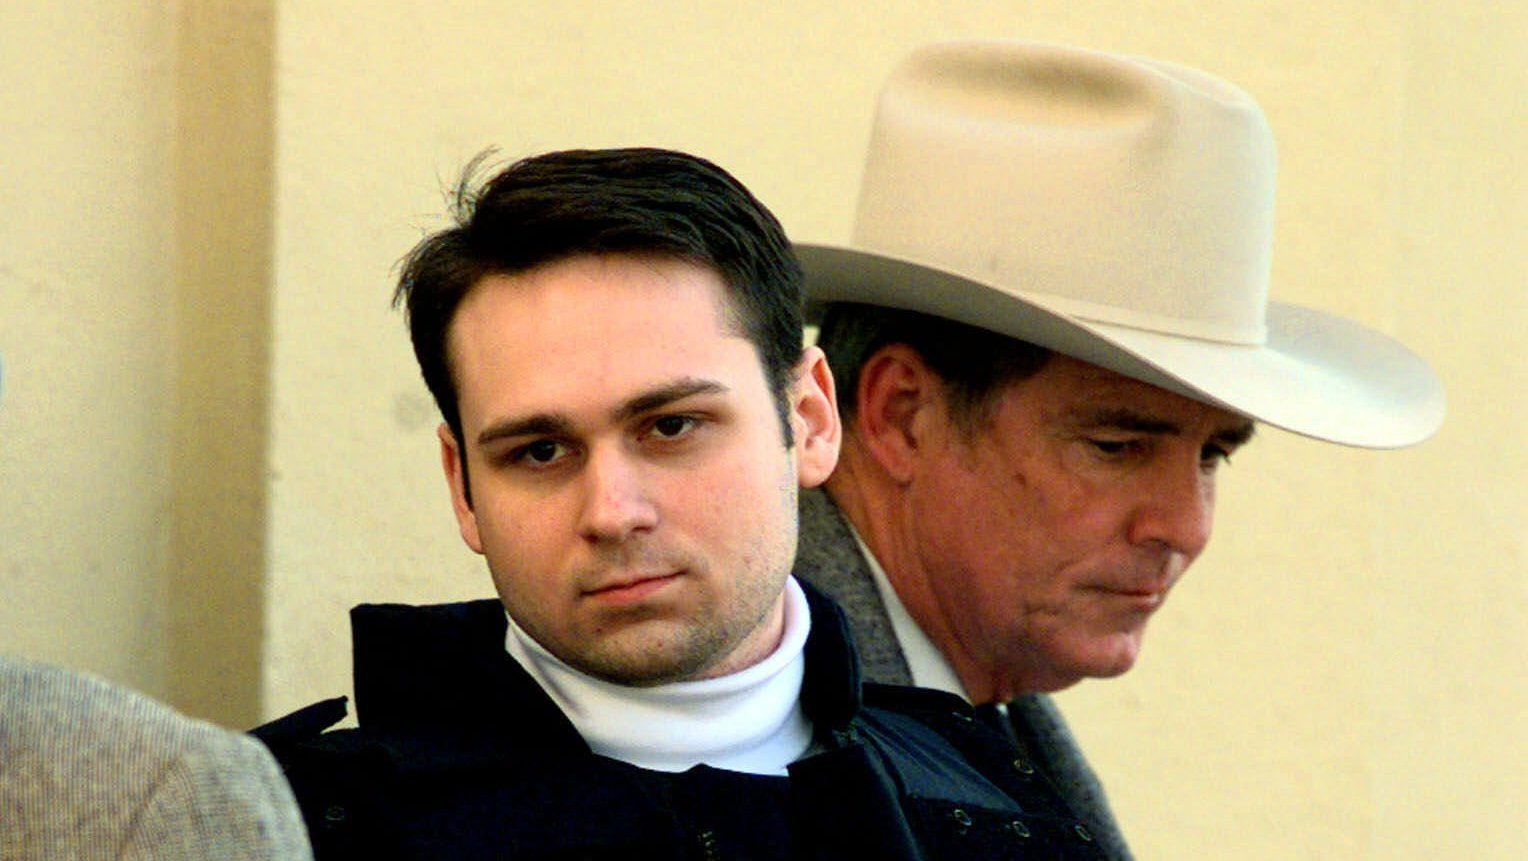 Texas To Execute Man Convicted In 1998 Murder Of James Byrd Jr.